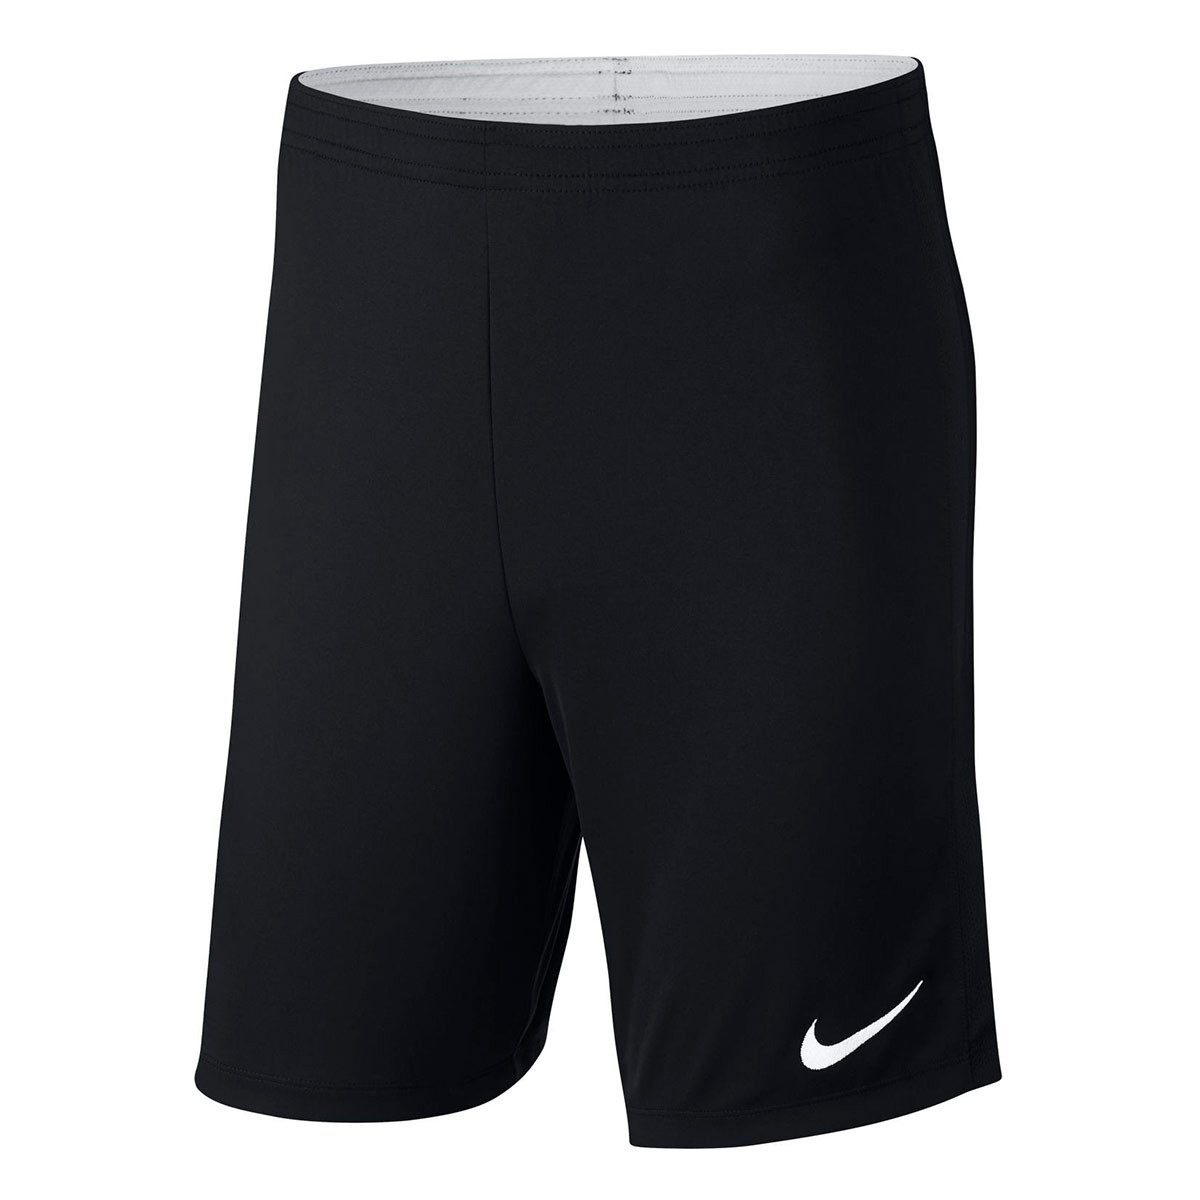 0788a6e1a Shorts Nike Kids Academy 18 Knit Black-White - Football store Fútbol ...